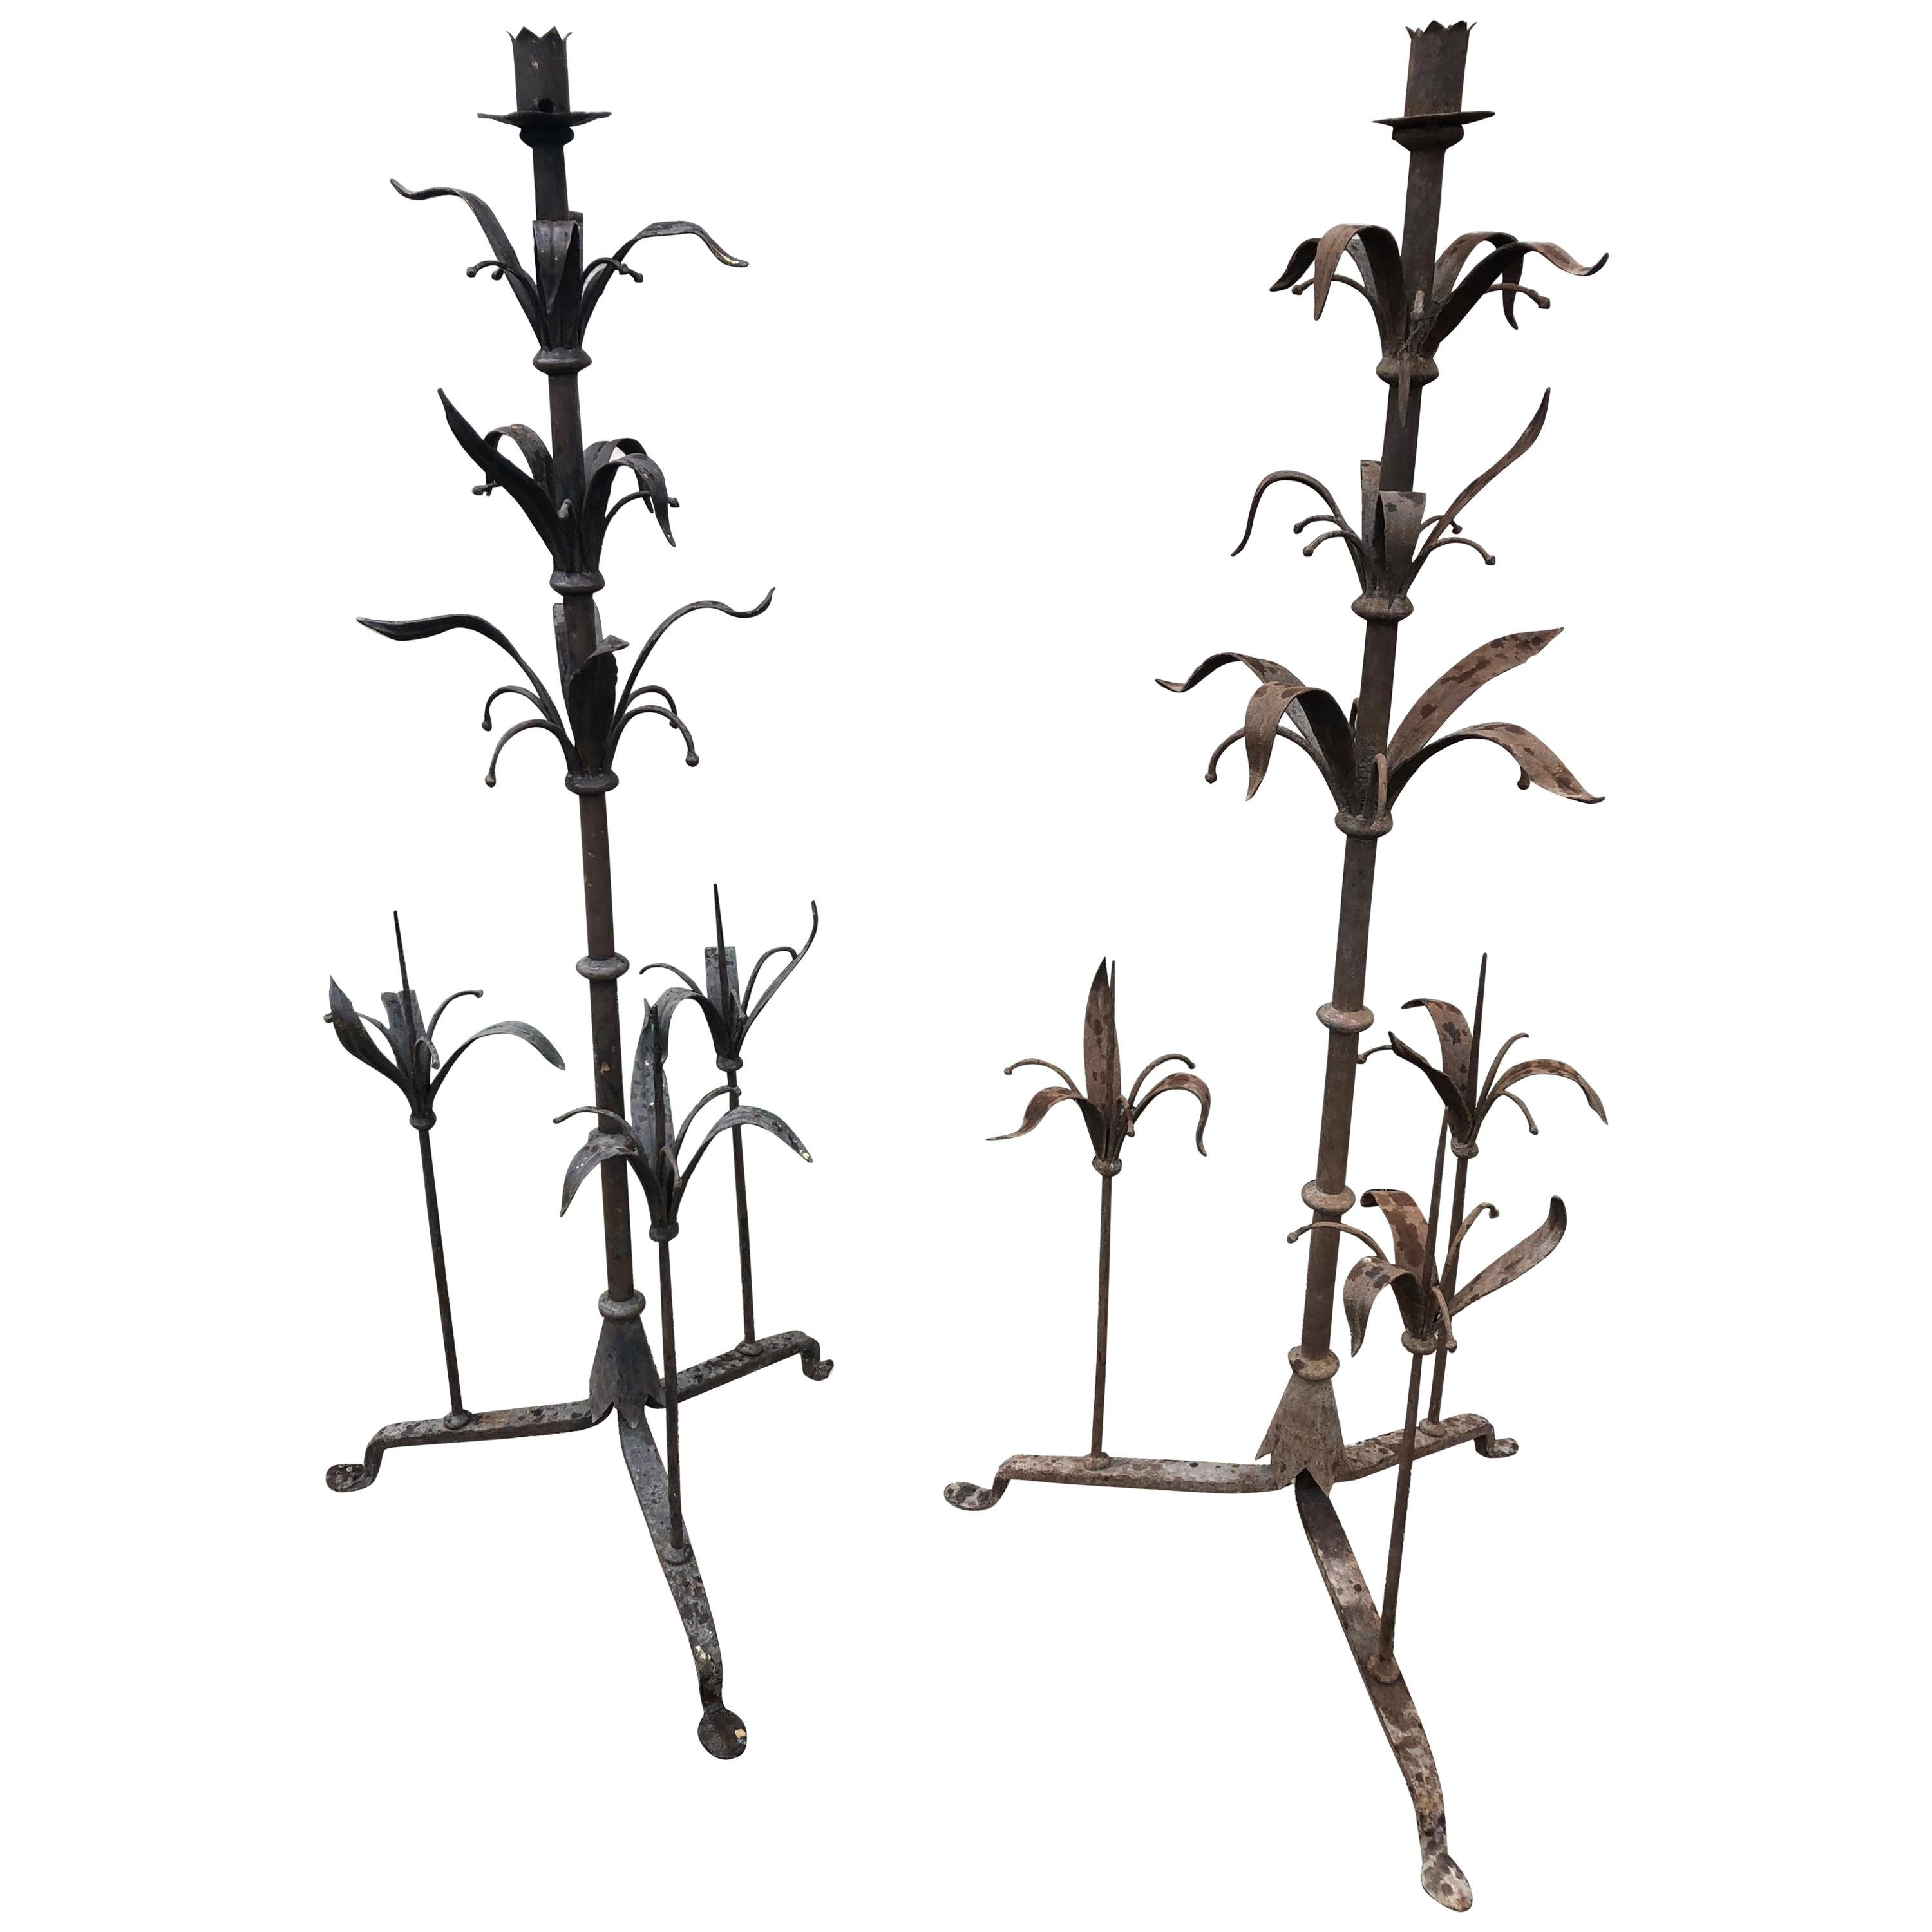 Pair of Tall French Wrought Iron Candelabra with Leaf Motif